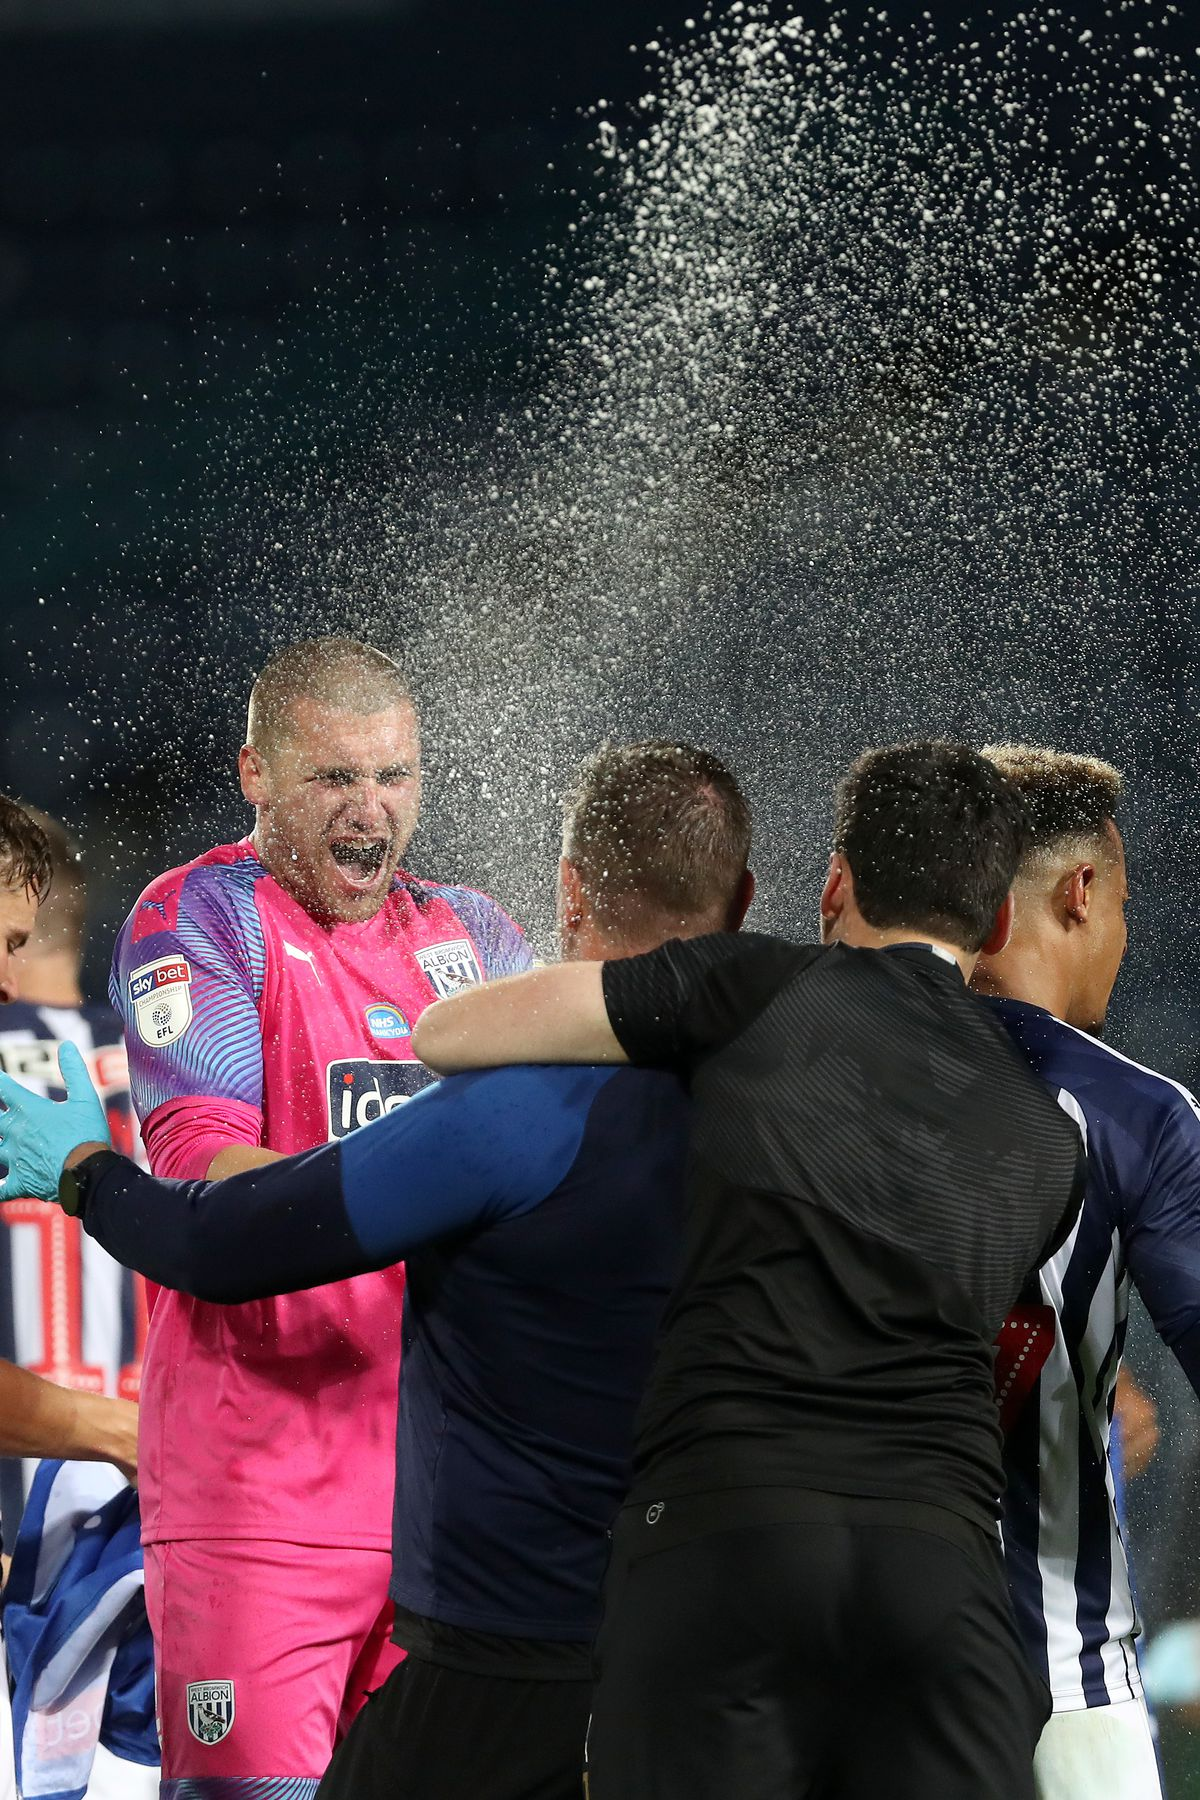 Sam Johnstone of West Bromwich Albion sprays champagne as he celebrates promotion to the Premier League on the pitch at the end of the match. (AMA)